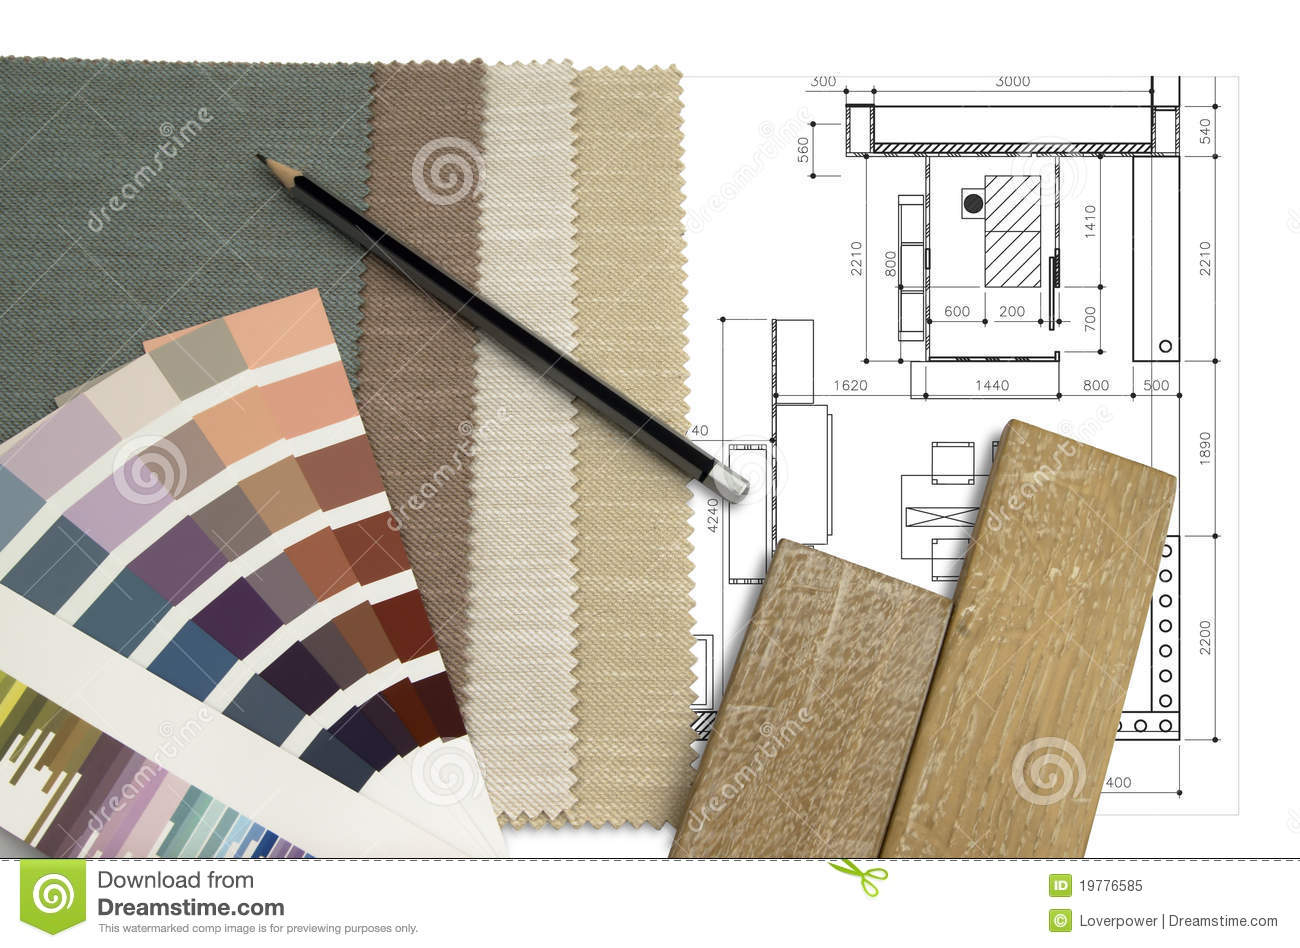 Worktable interior design stock image. Image of design ...